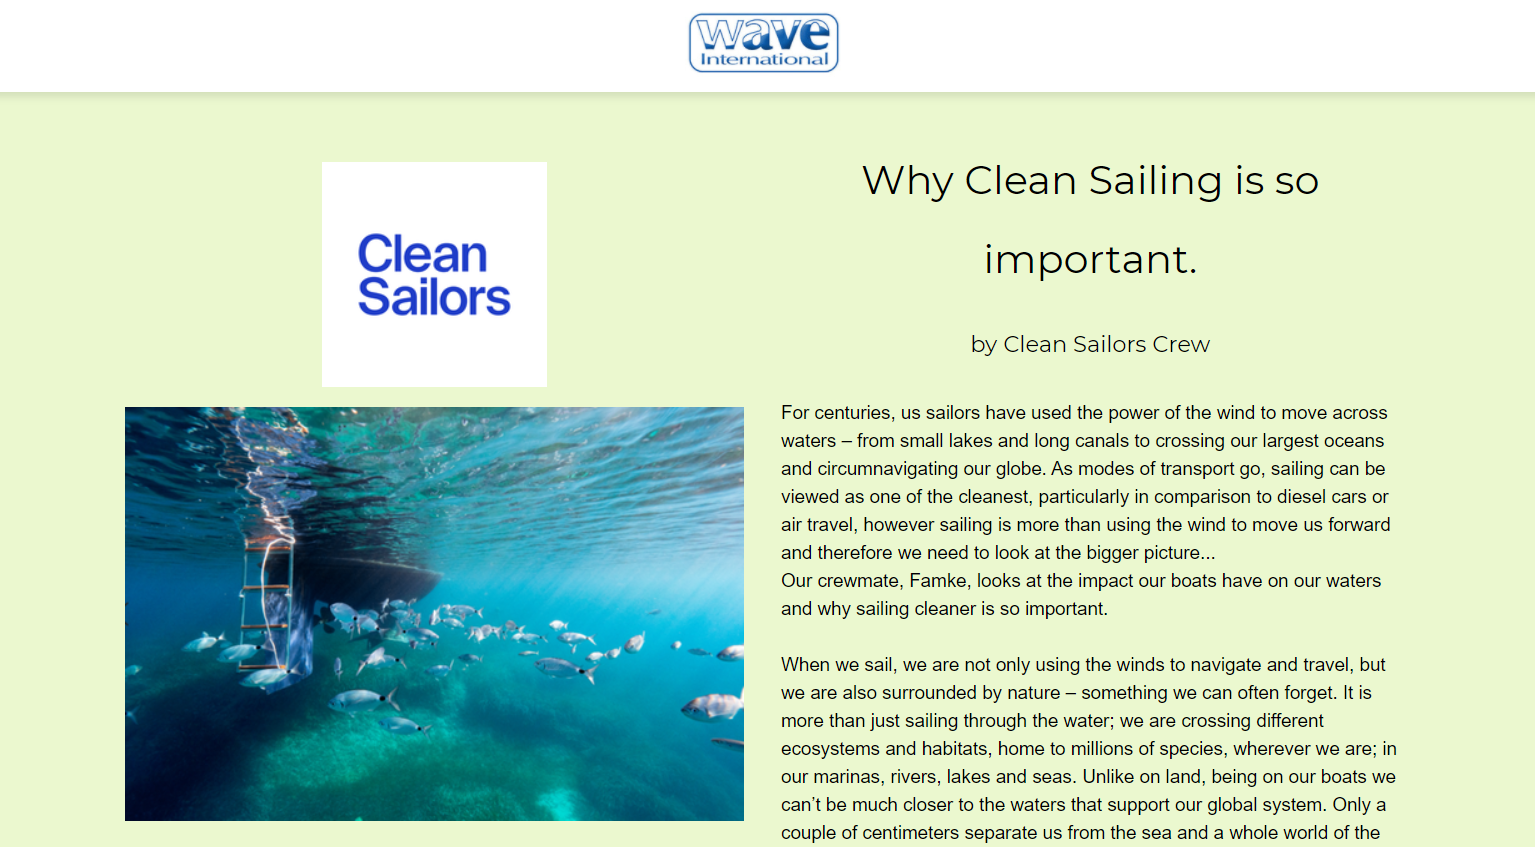 Clean Sailors on Wave International